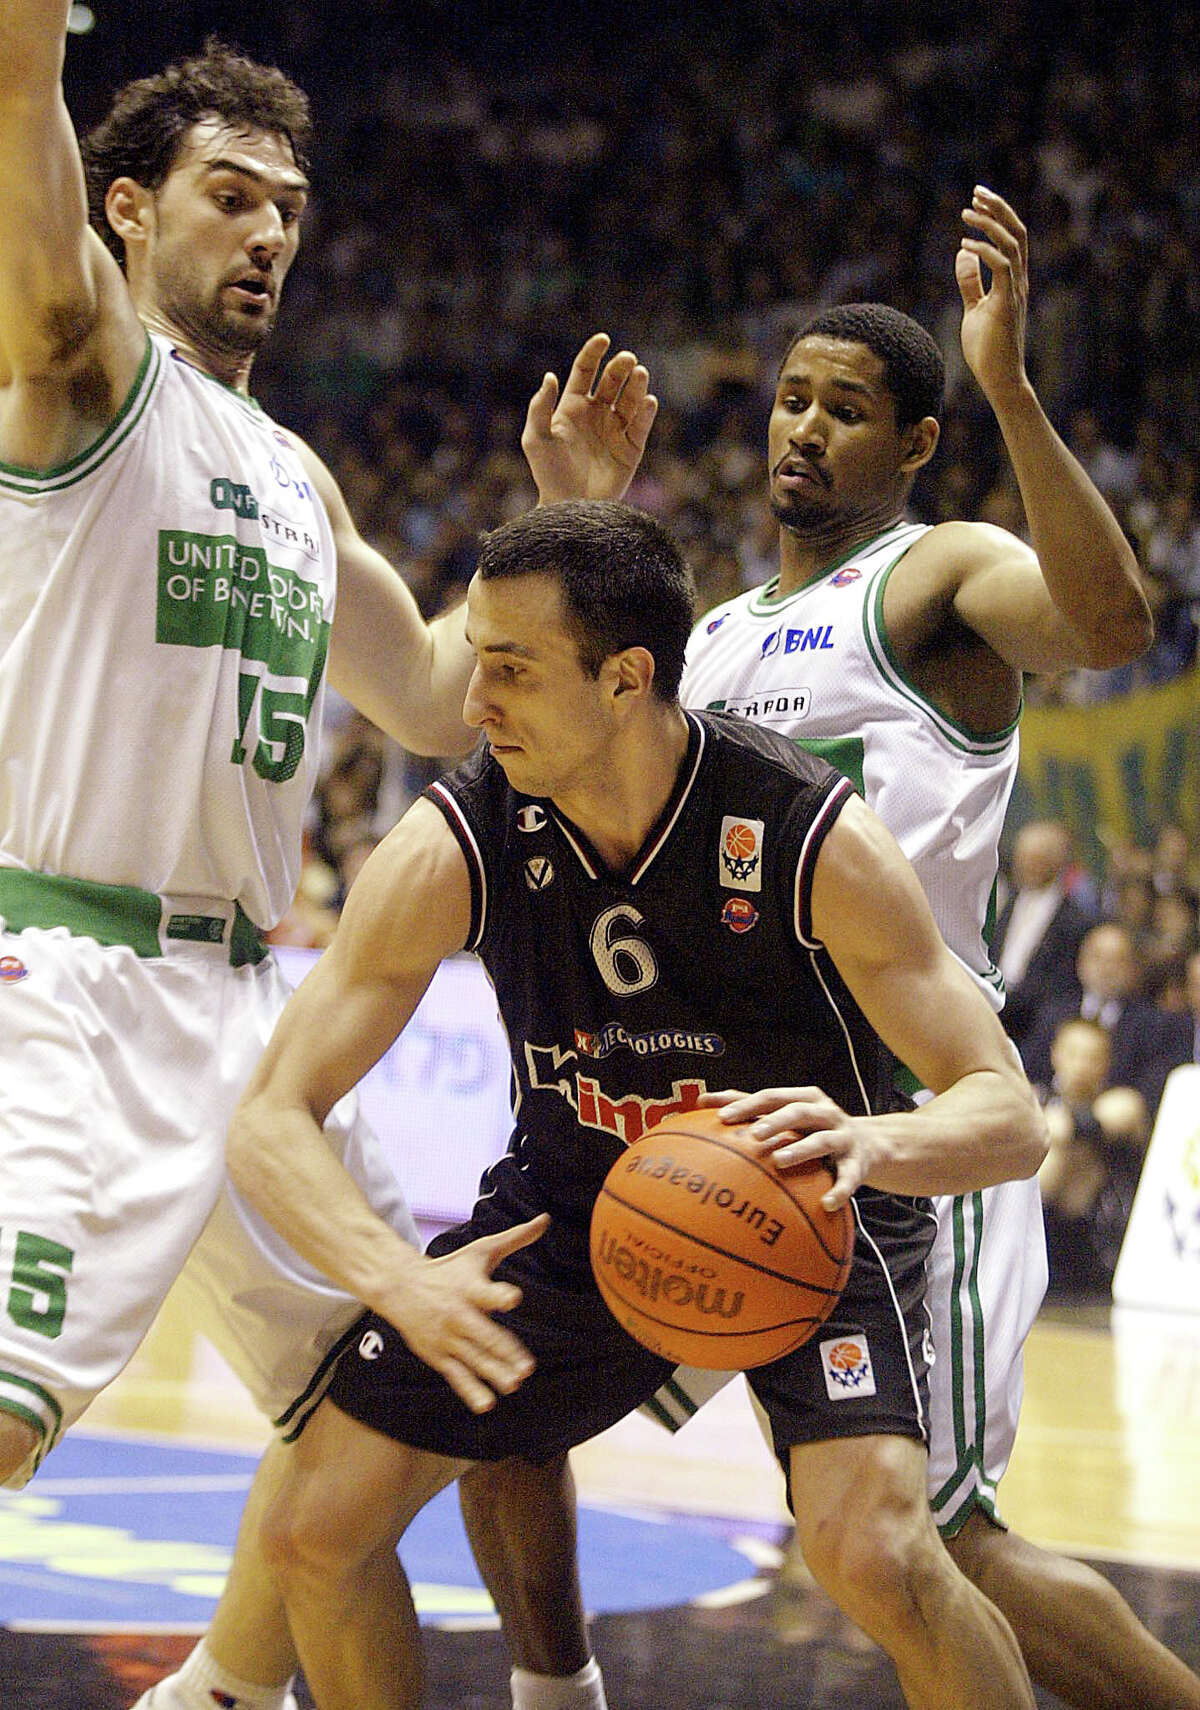 Emanuel Ginobili of Kinder Bologna (C) vies with Jorge Garbajosa (L) and Charlie Bell of Benetton Treviso 03 May 2002 in a Euroleague final four match. (Photo credit should read GIORGIO BENVENUTI/AFP/Getty Images)